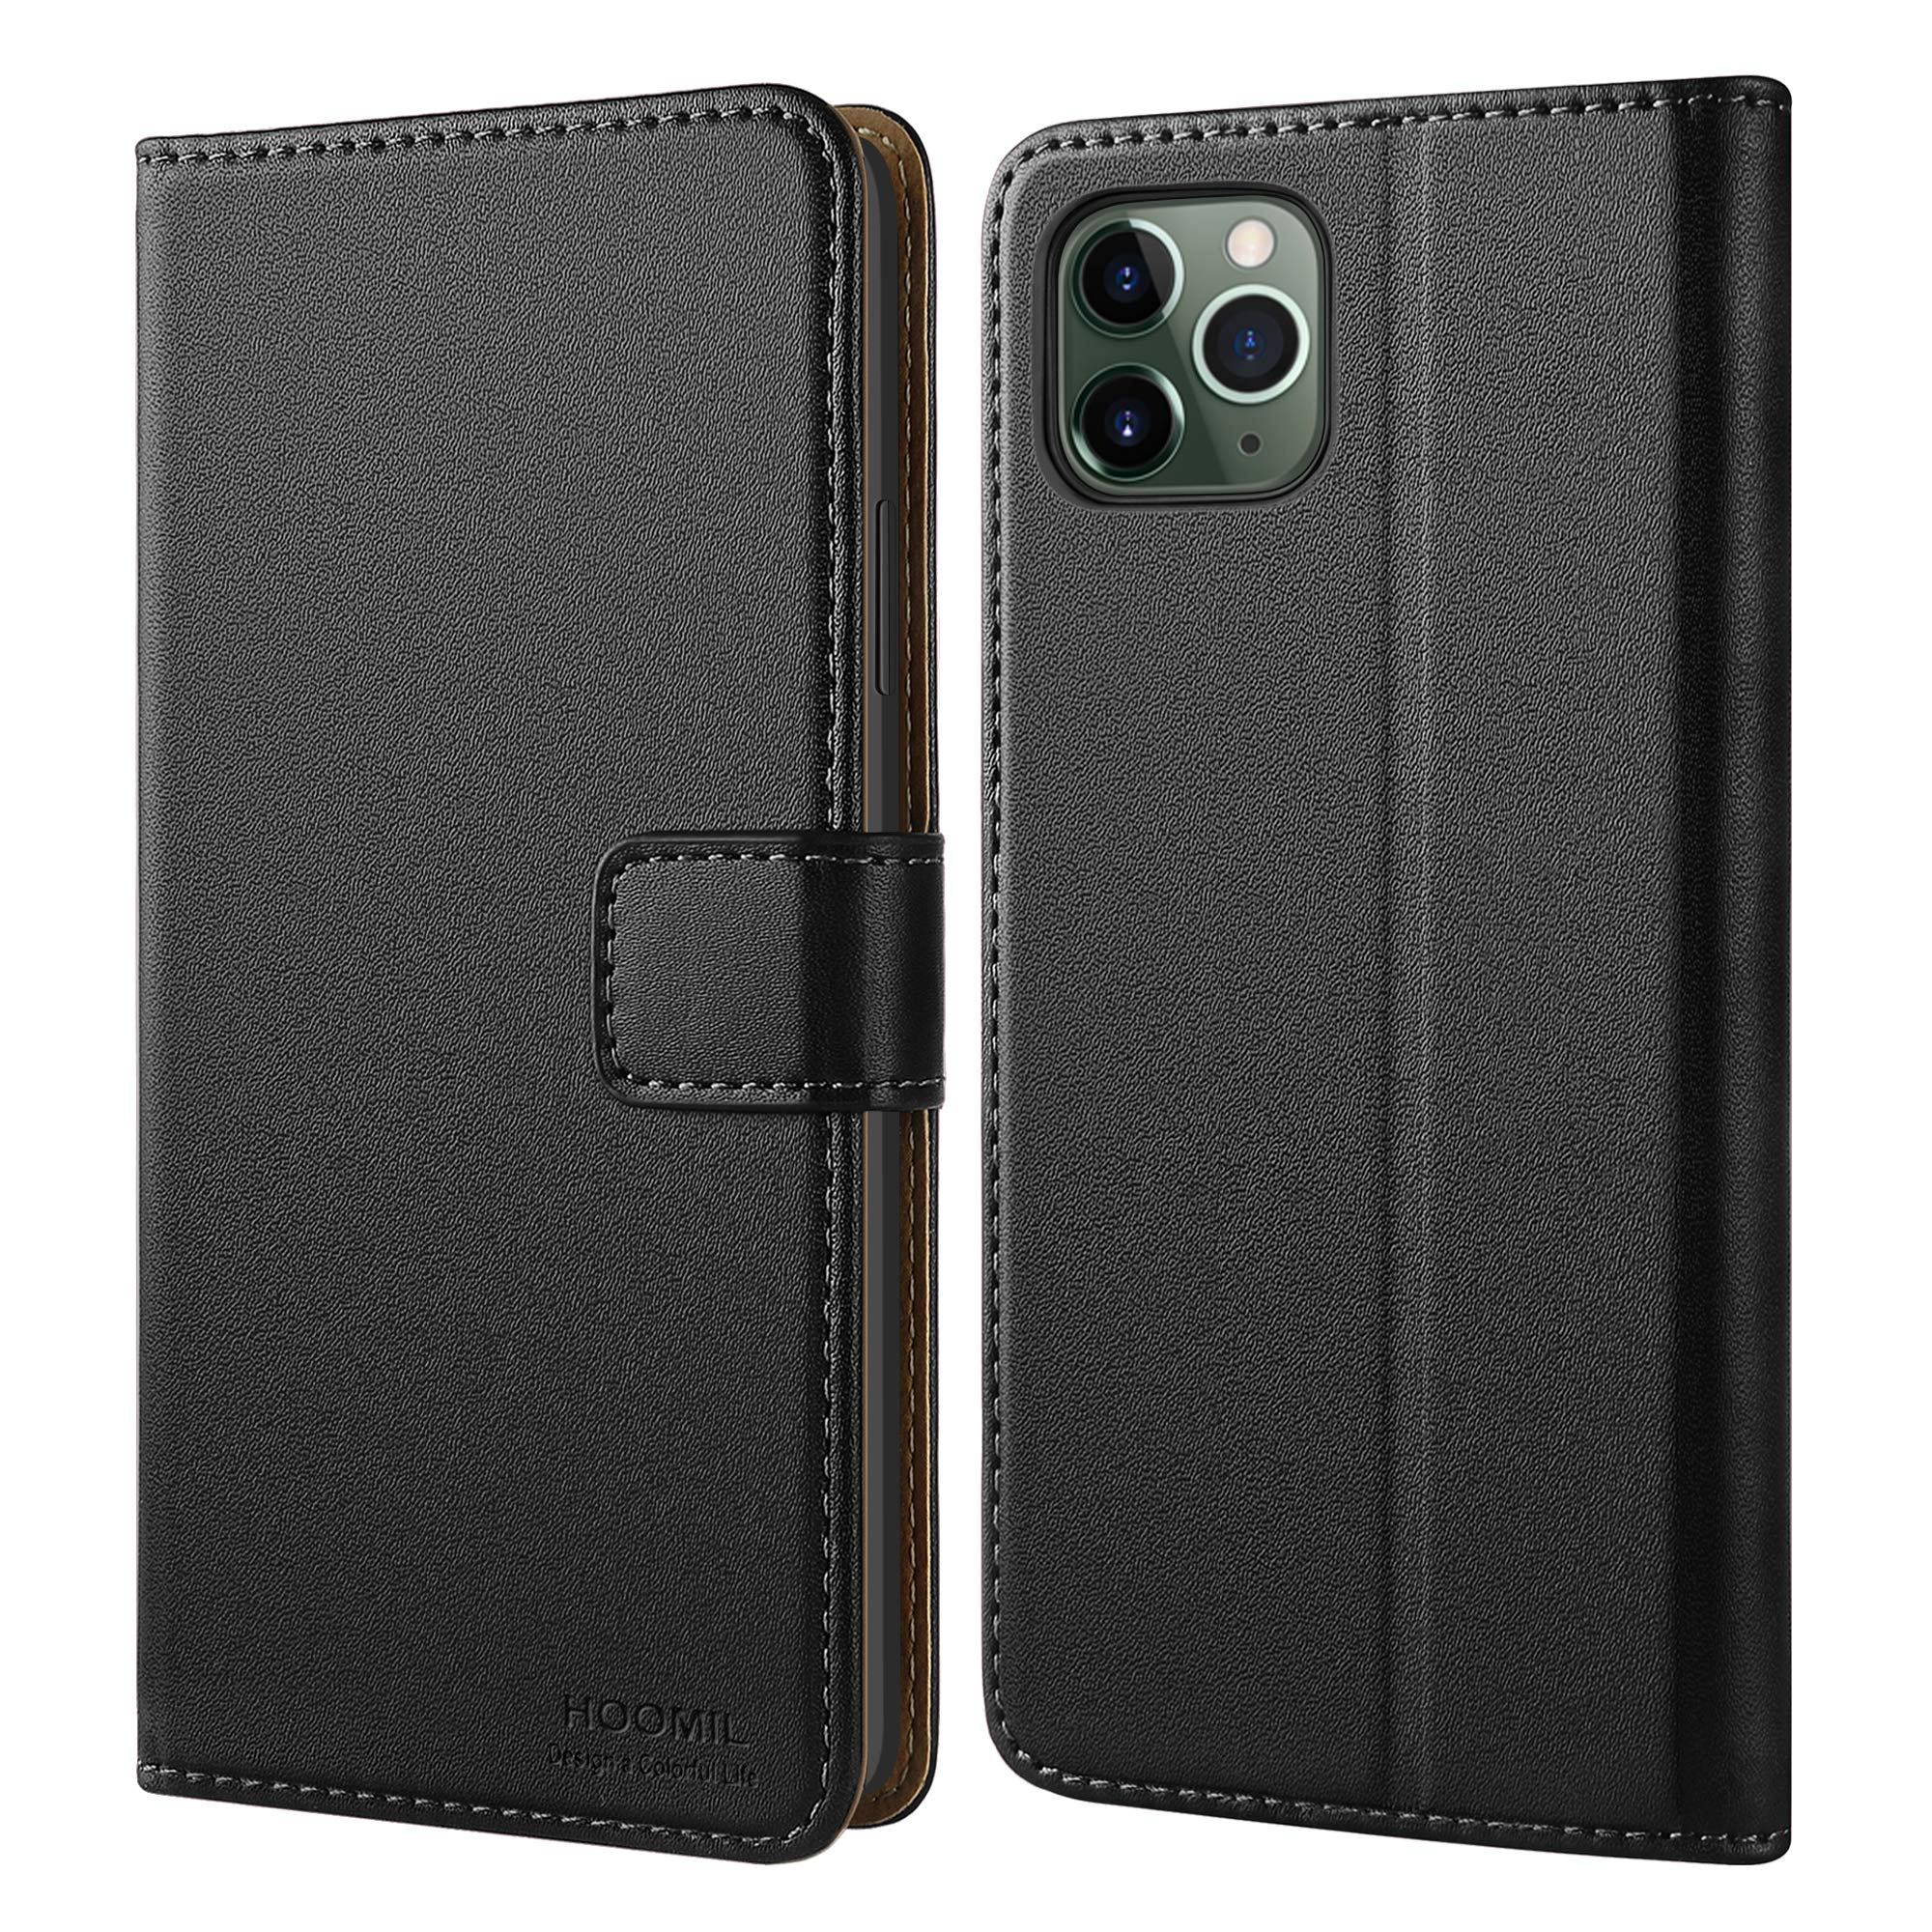 HOOMIL iPhone 11 Pro Case, iPhone 11 Pro Leather Case Premium Leather Folio Case, Flip Book Style Wallet Cover with TPU Shockproof, Stand, Card Slots and Cash Pocket for iPhone 11 Pro (Black)